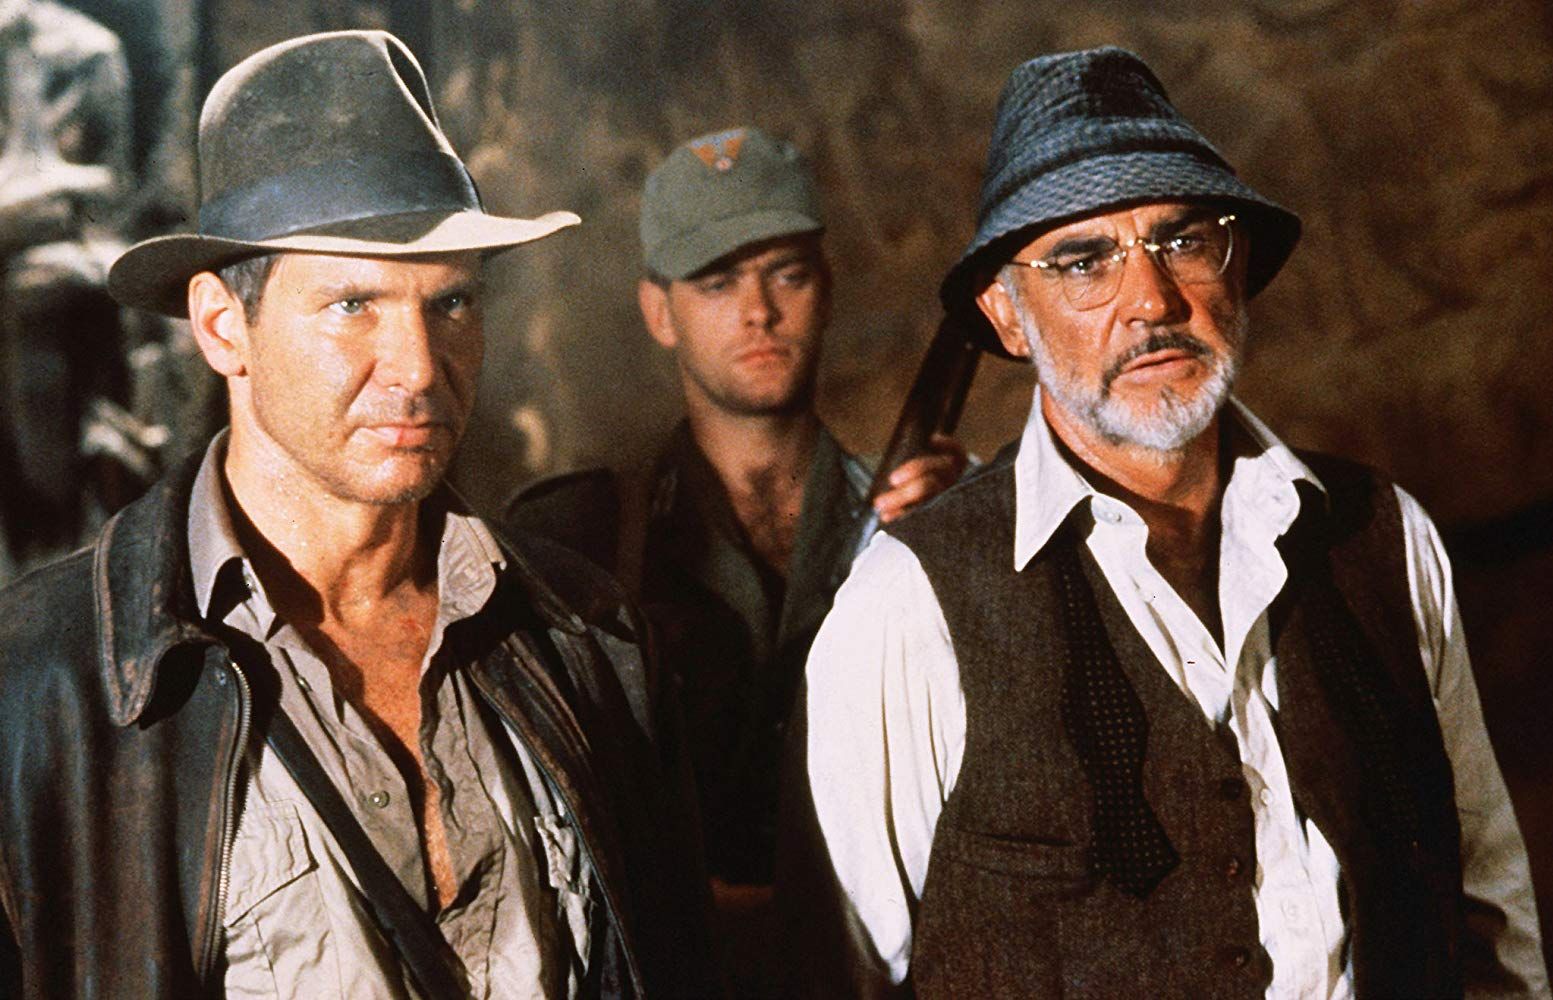 indiana 1 20 Things You Didn't Know About Indiana Jones and the Last Crusade